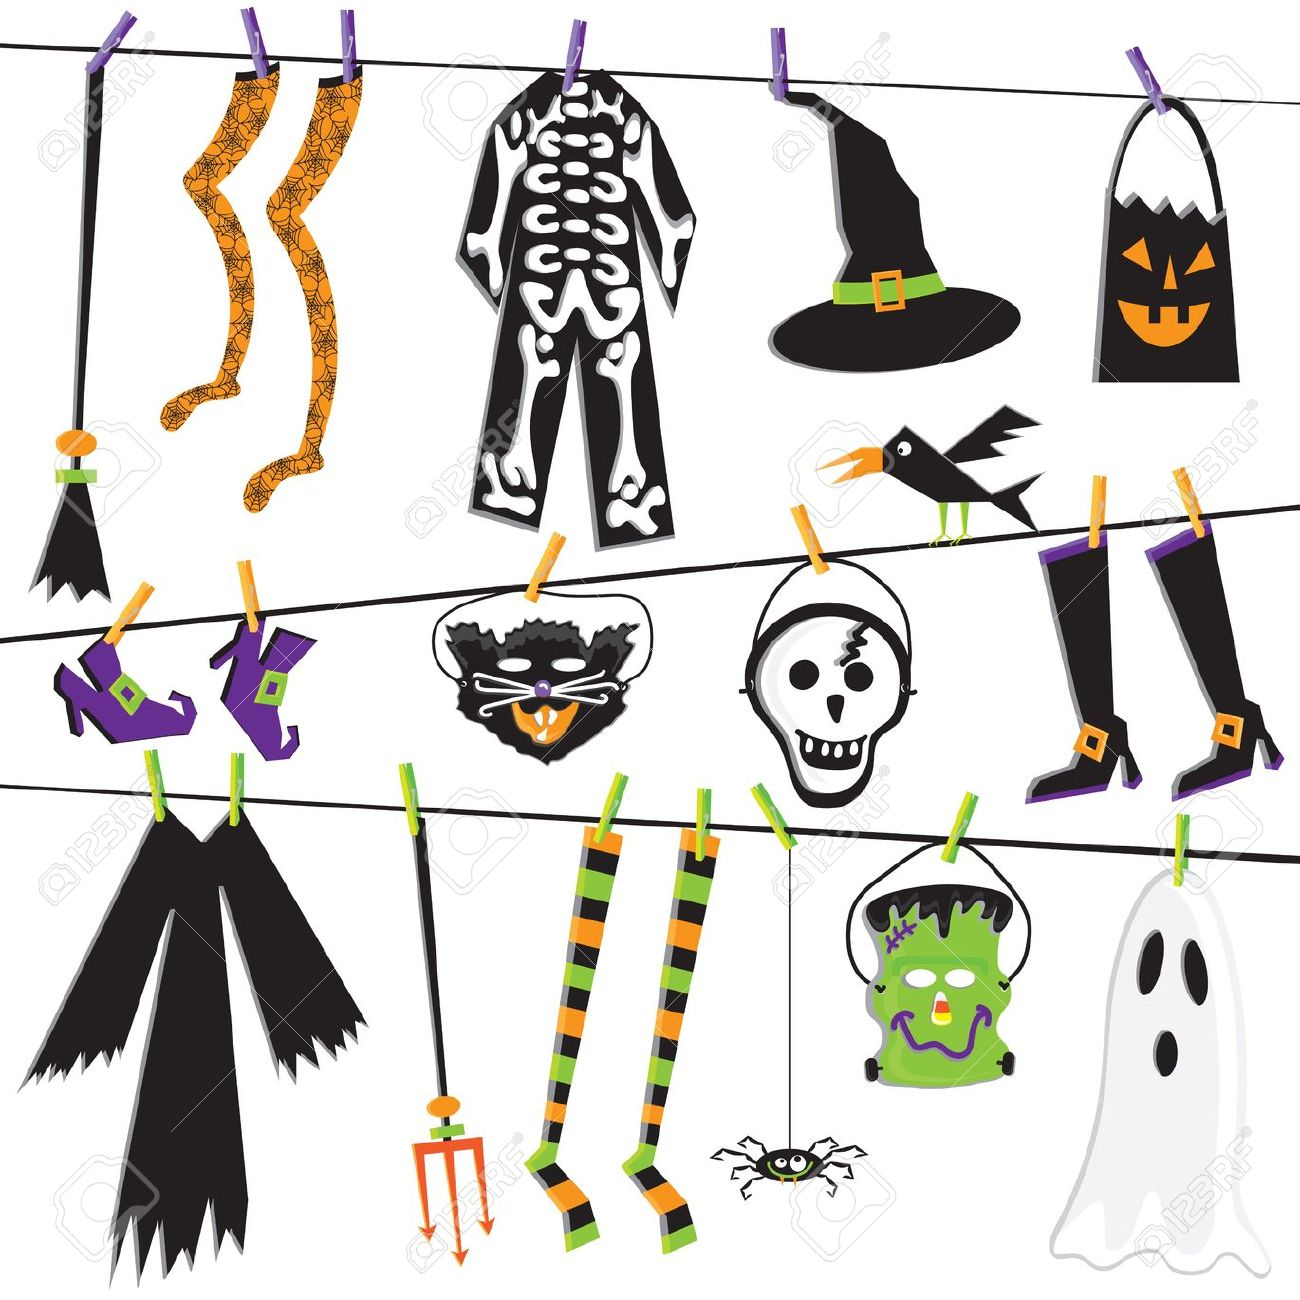 Adult halloween clipart black and white download Halloween Costume Clothesline | Clipart Panda - Free Clipart Images black and white download